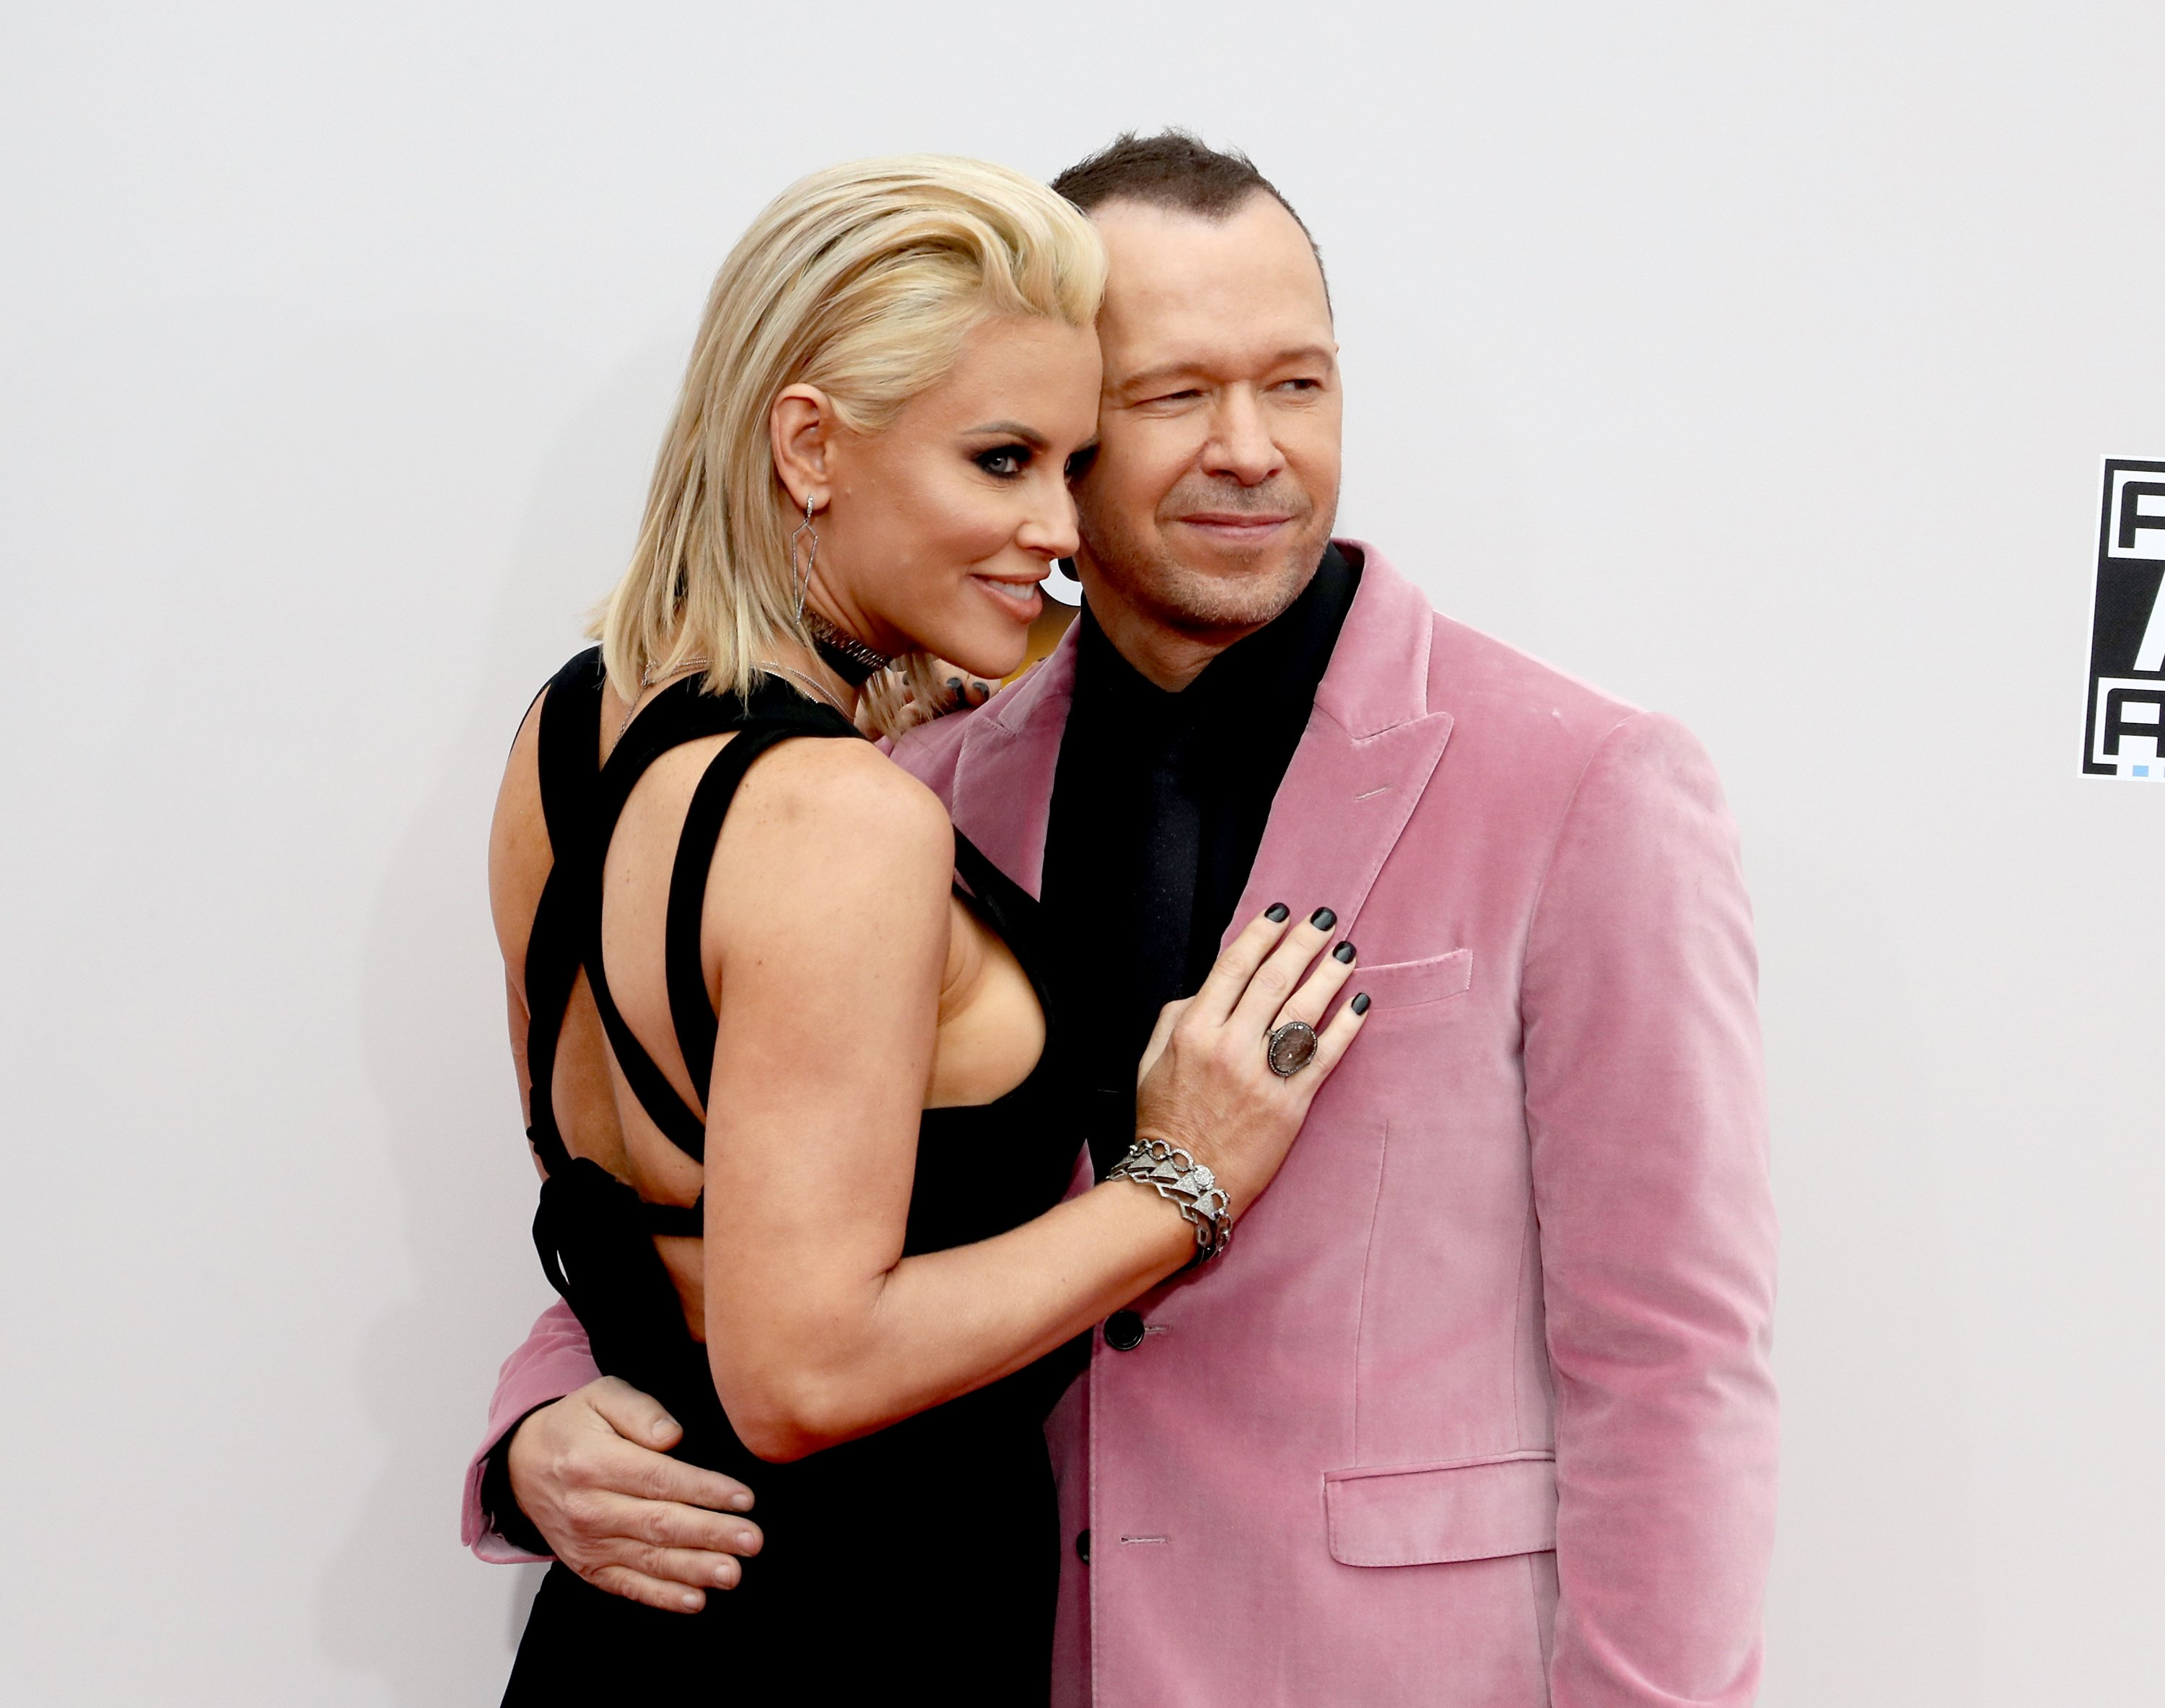 Image Credit: Getty Images/David Livingston | Jenny McCarthy and Donnie Wahlberg attend the 2016 American Music Awards